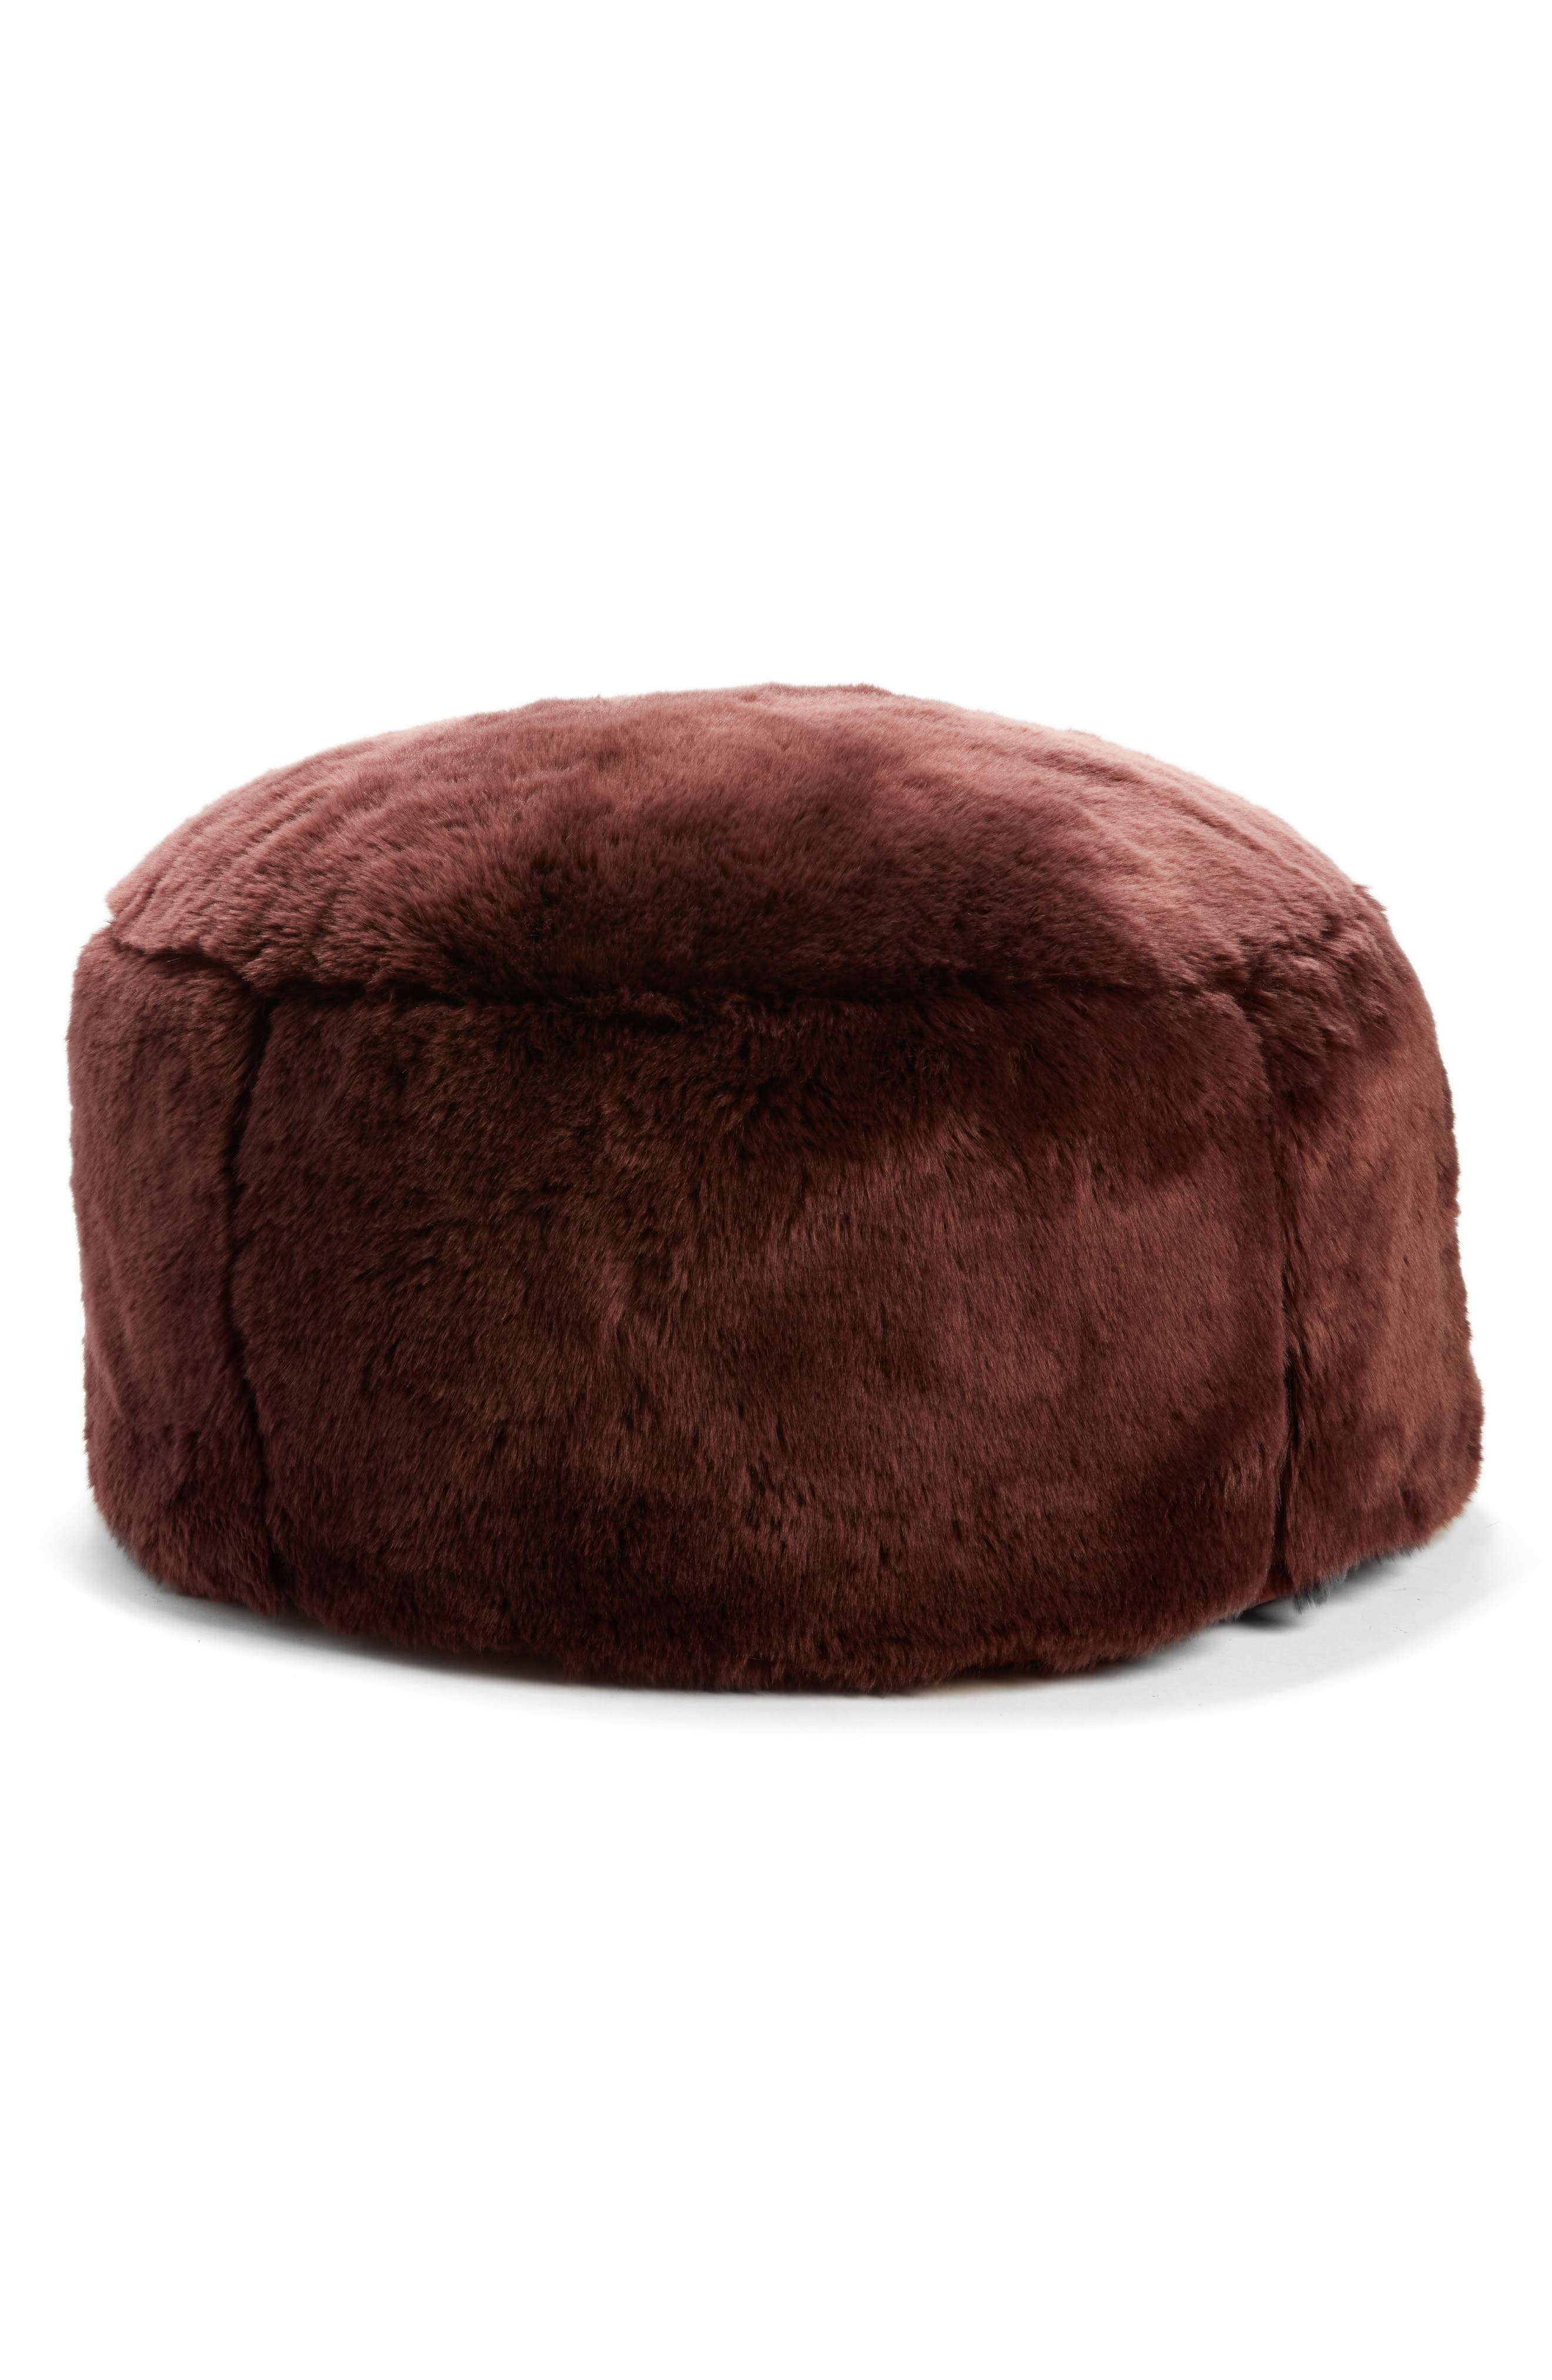 NORDSTROM AT HOME, Cuddle Up Faux Fur Drum Pouf, Main thumbnail 1, color, 931